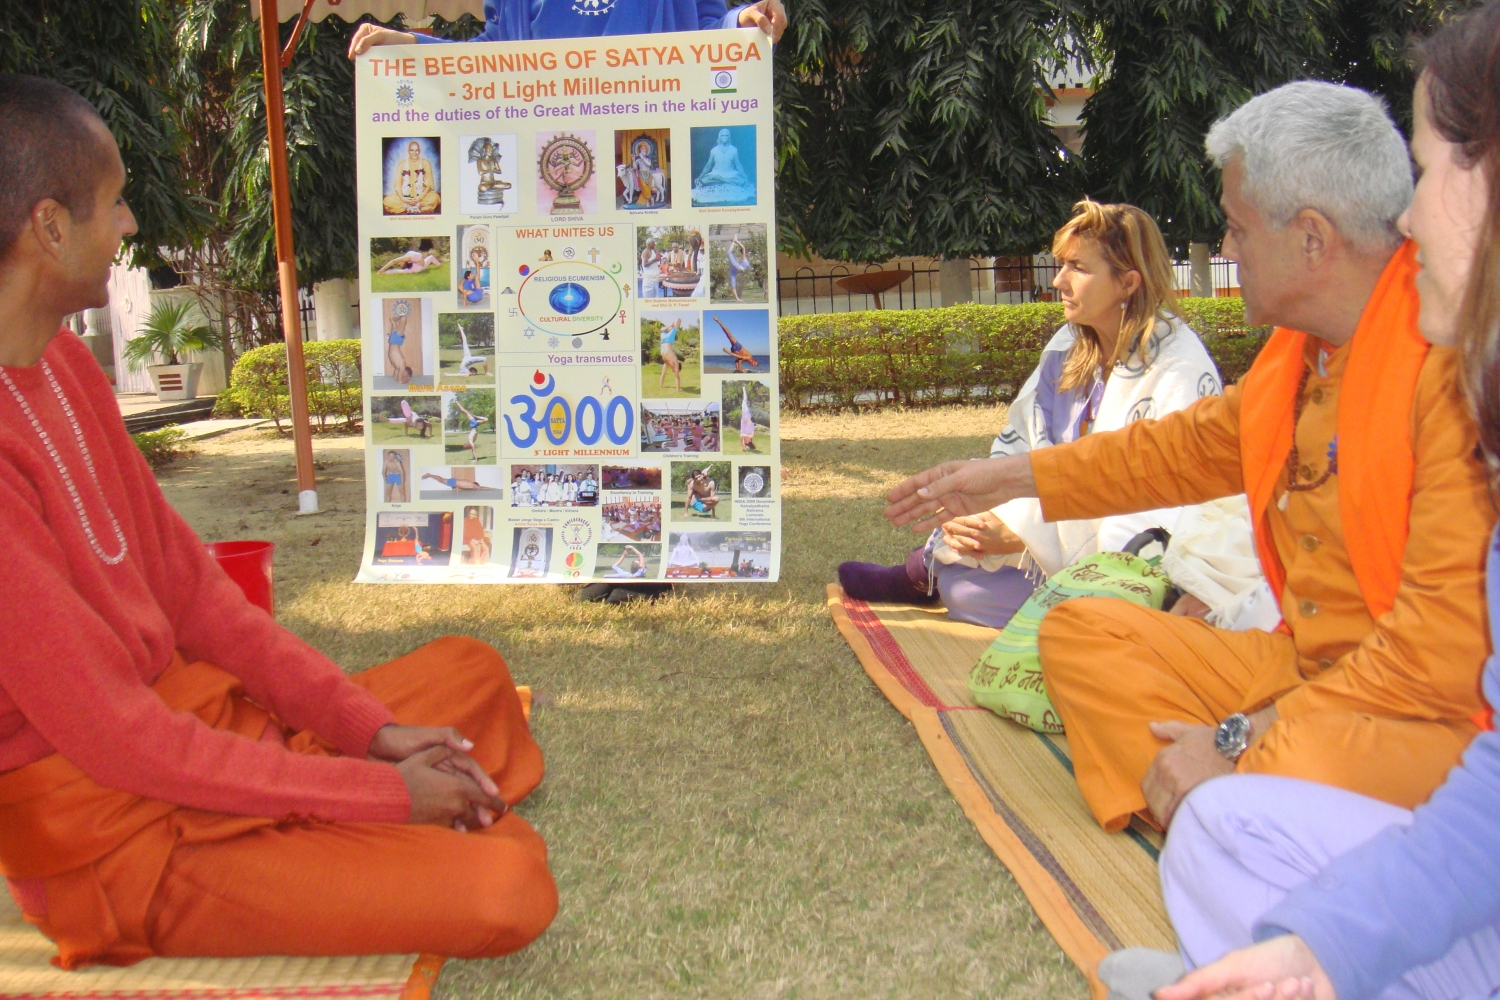 Meeting of H.H. Jagat Guru Amrta Súryánanda Mahá Rája with Svámin Súryaprakash - Bihar School of Yoga, Munger, India - 2010, January